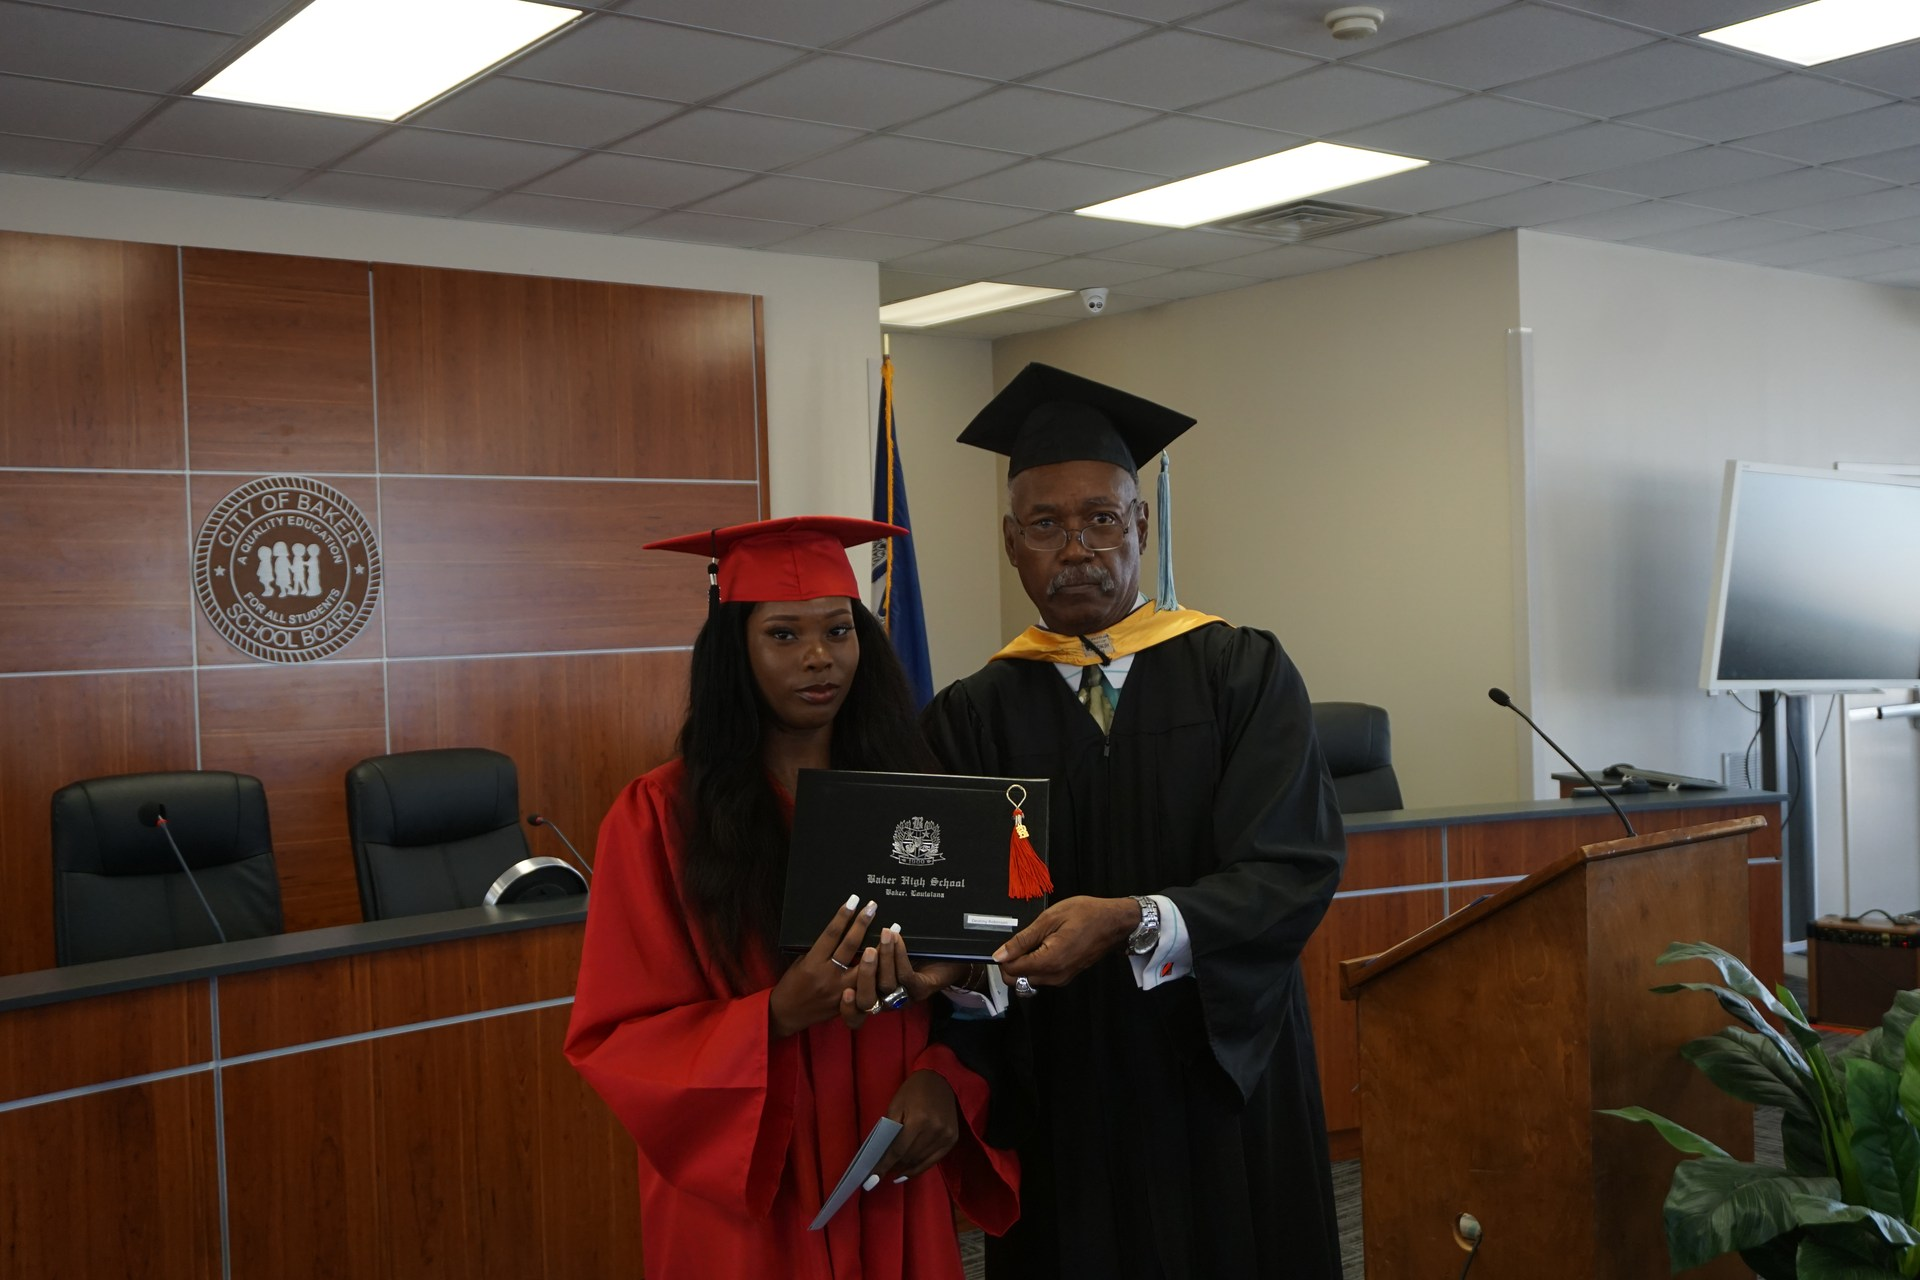 A photo from the Alternative Learning Center May 28, 2018 Graduation